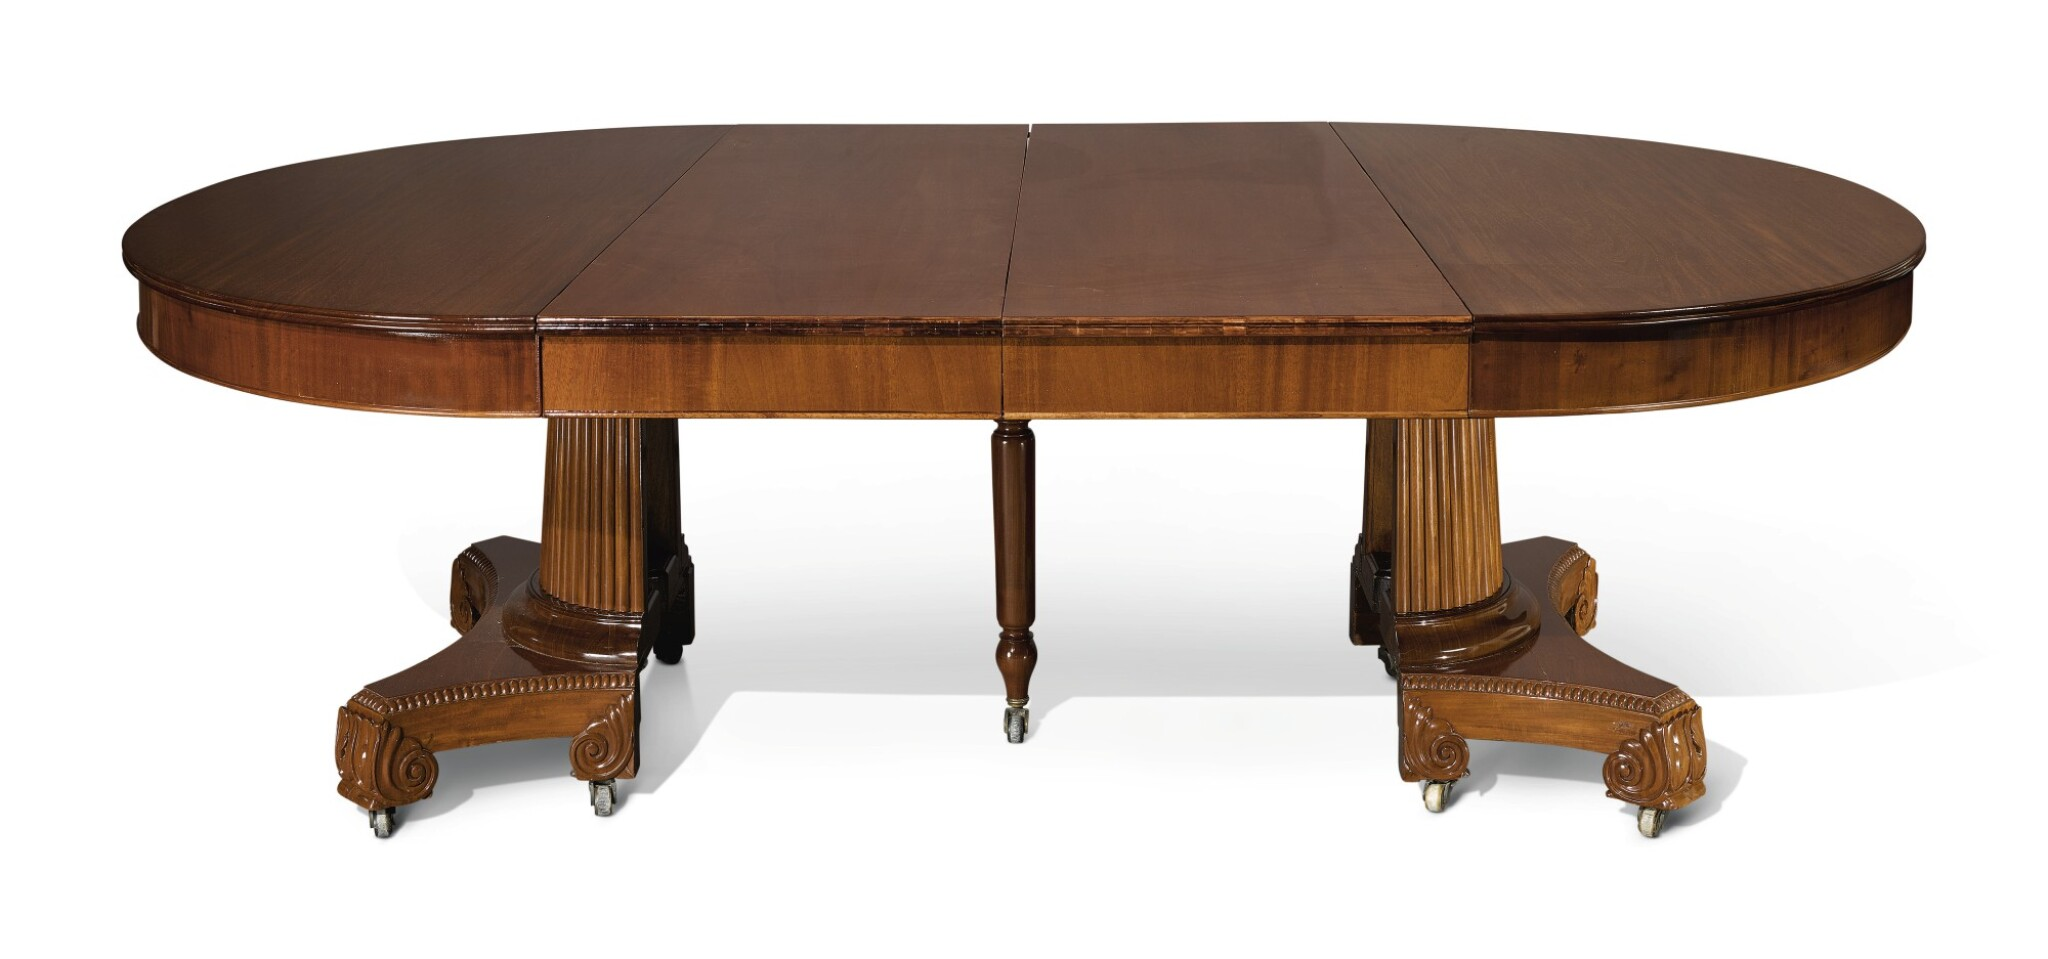 View full screen - View 1 of Lot 283. A CONTINENTAL NEOCLASSICAL MAHOGANY DINING TABLE, 19TH CENTURY .